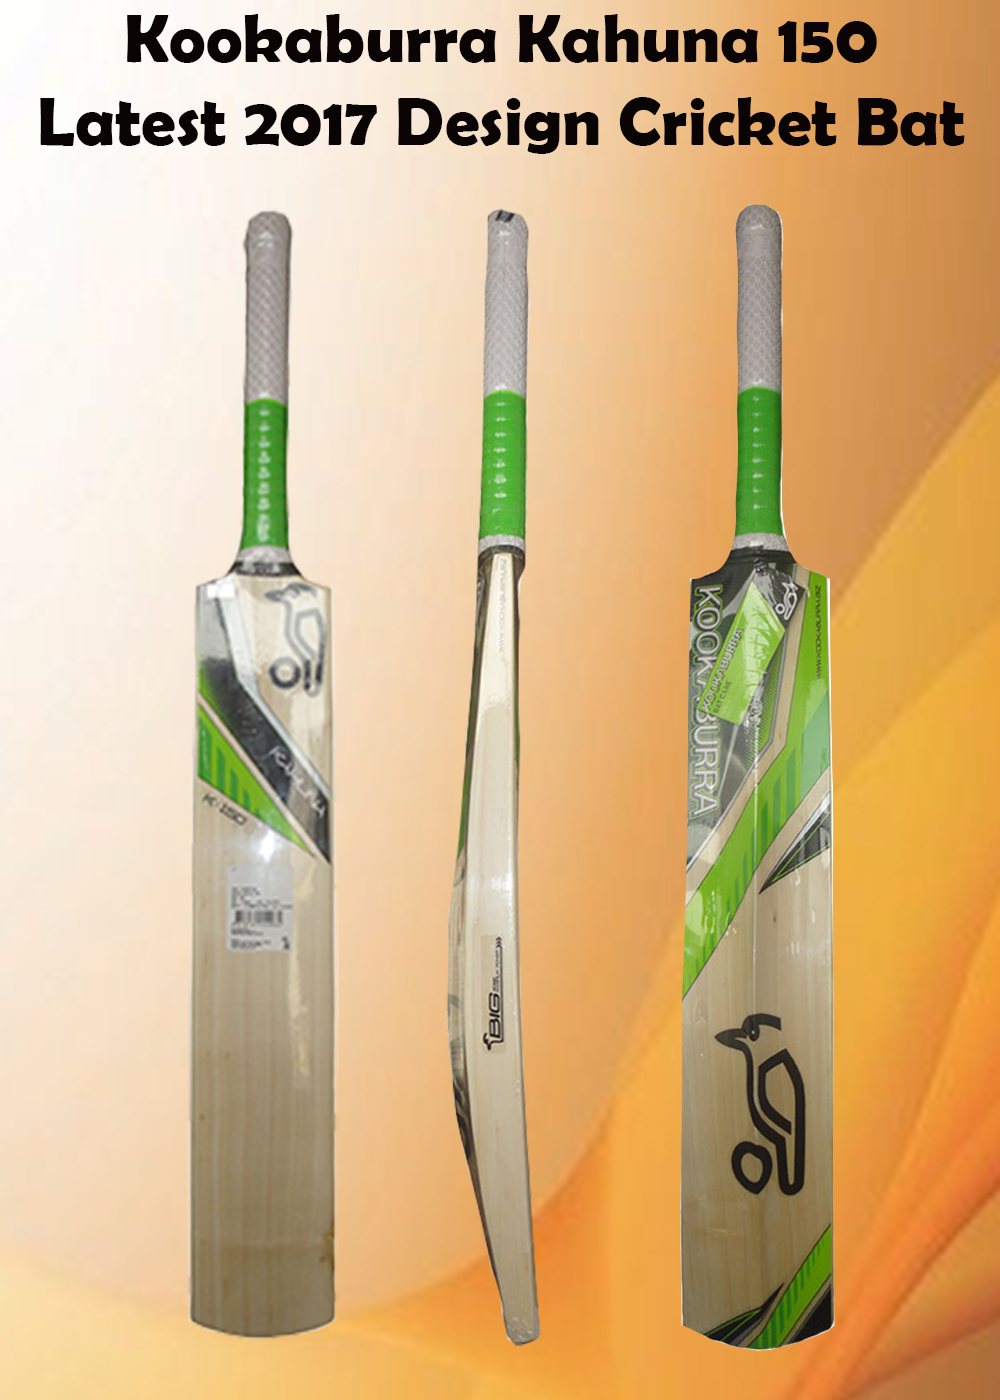 Kookaburra Kahuna 150 Cricket Bat_4